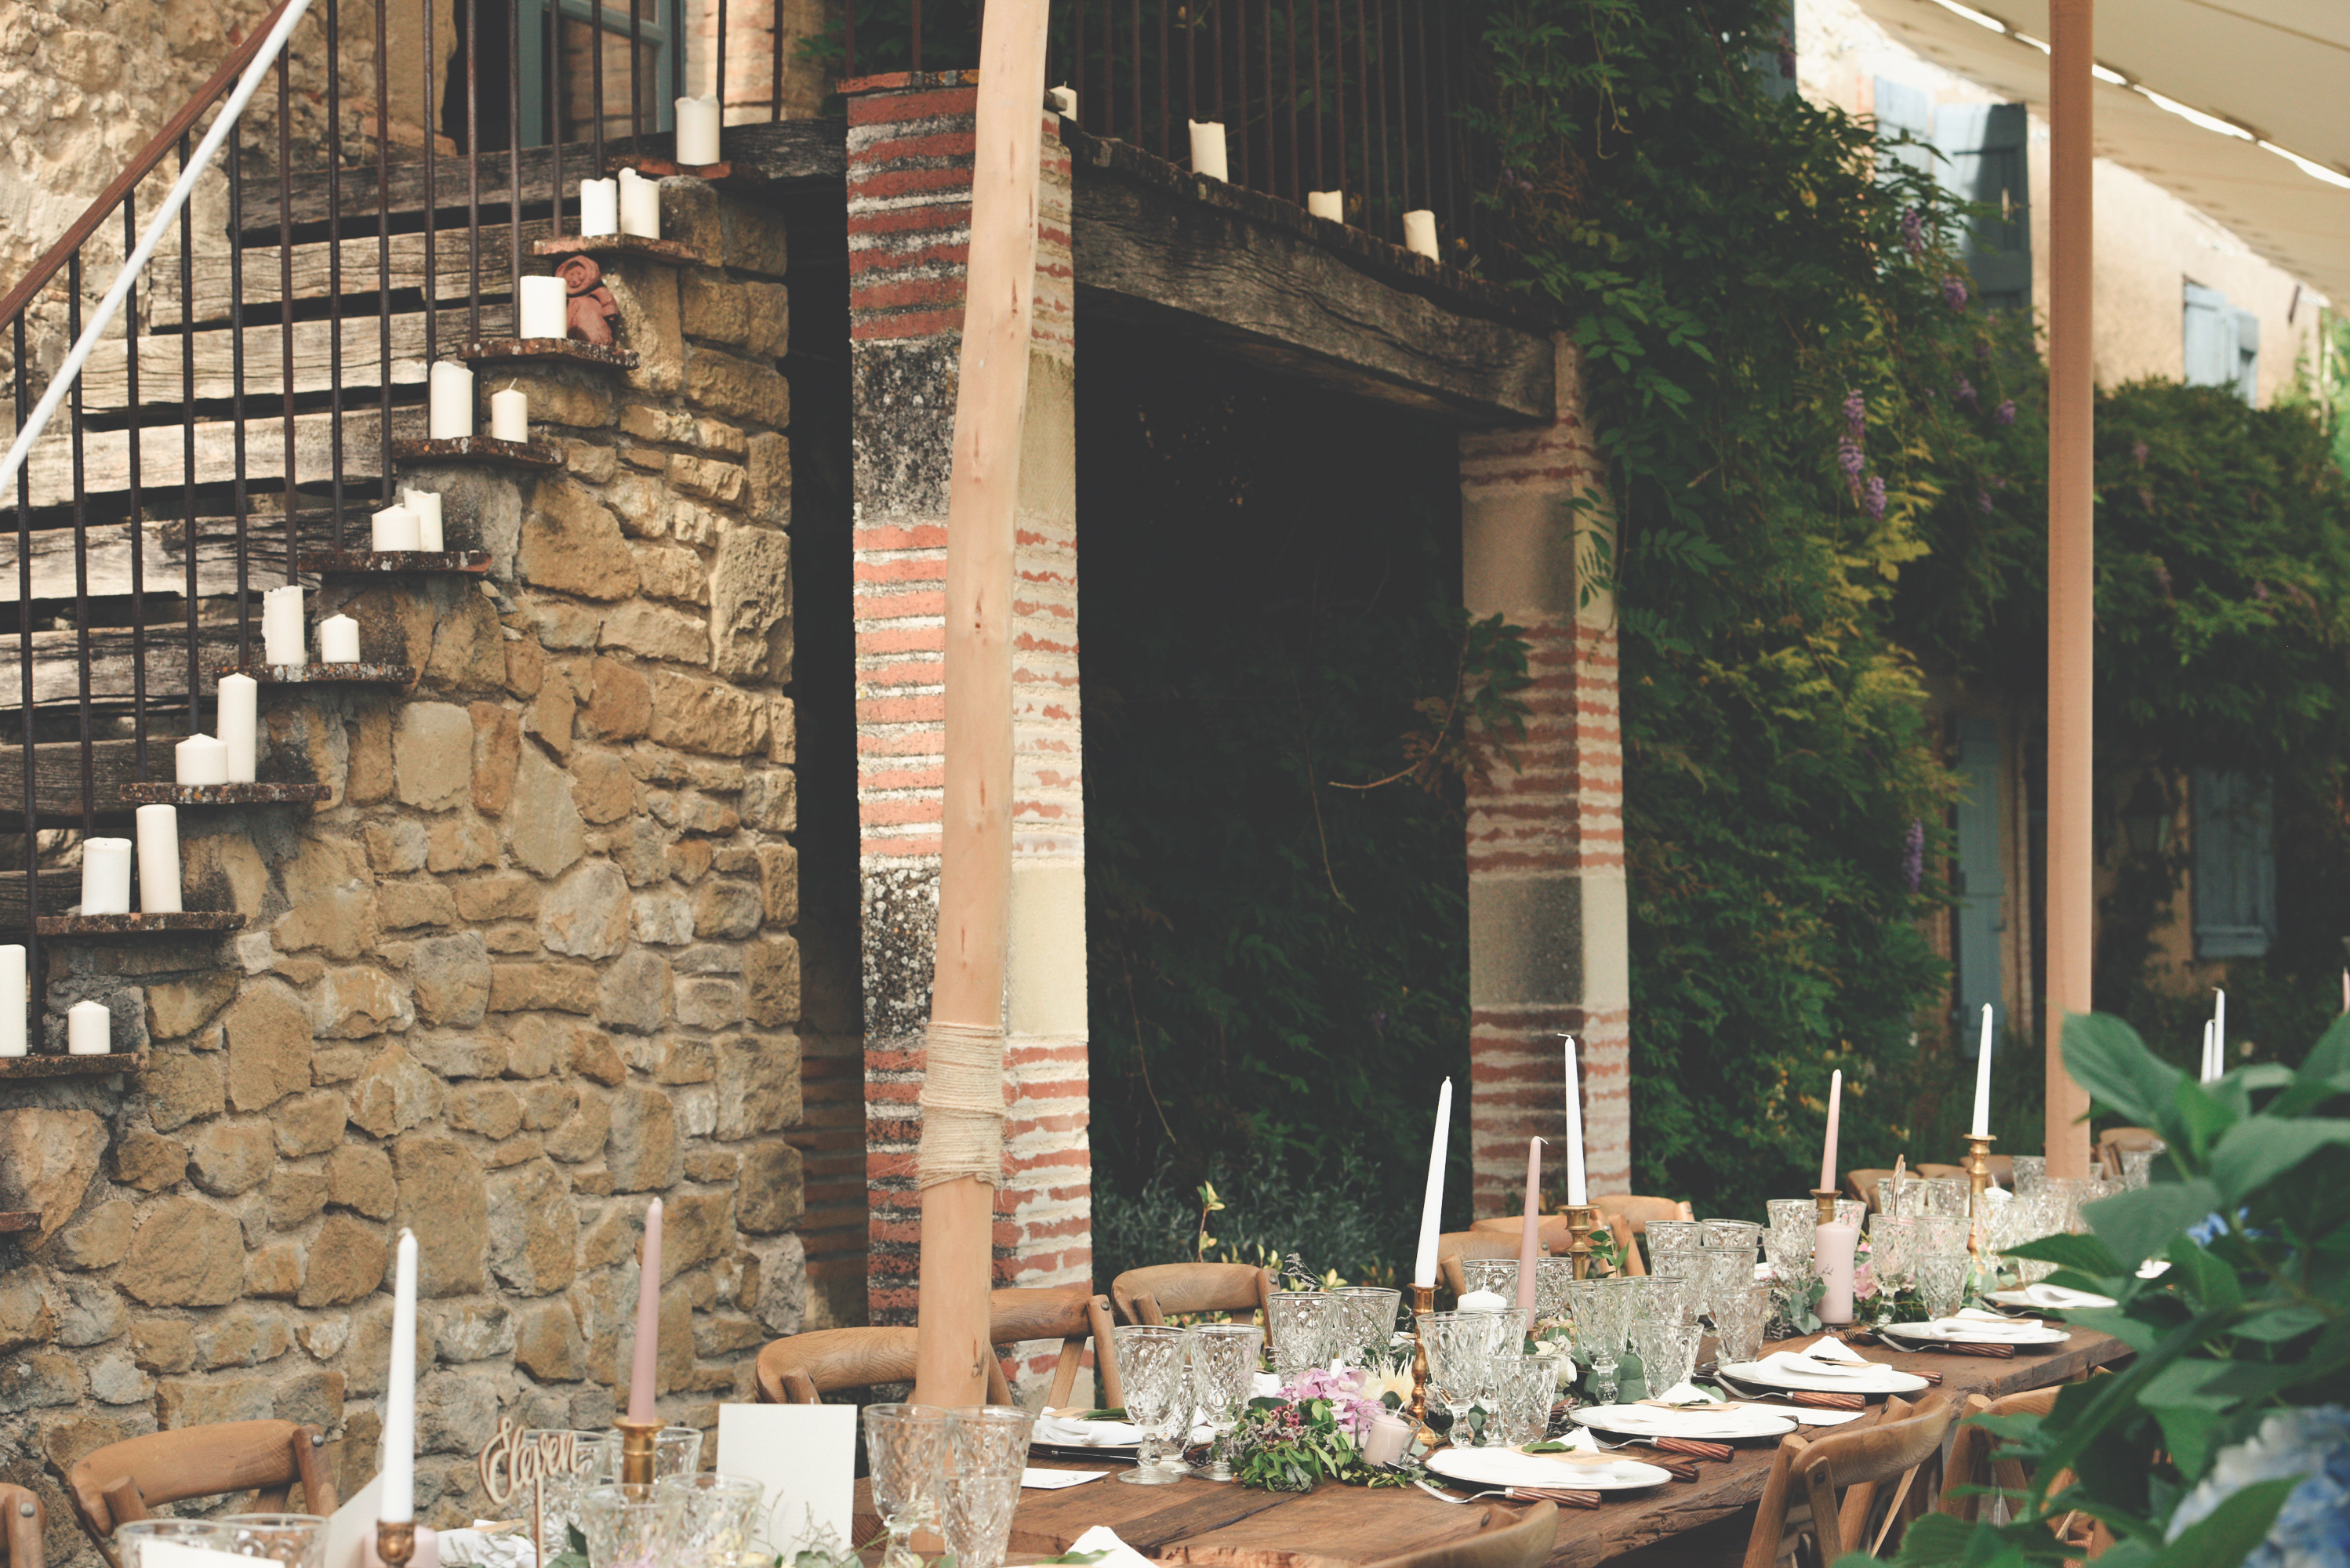 South West France outdoor wedding